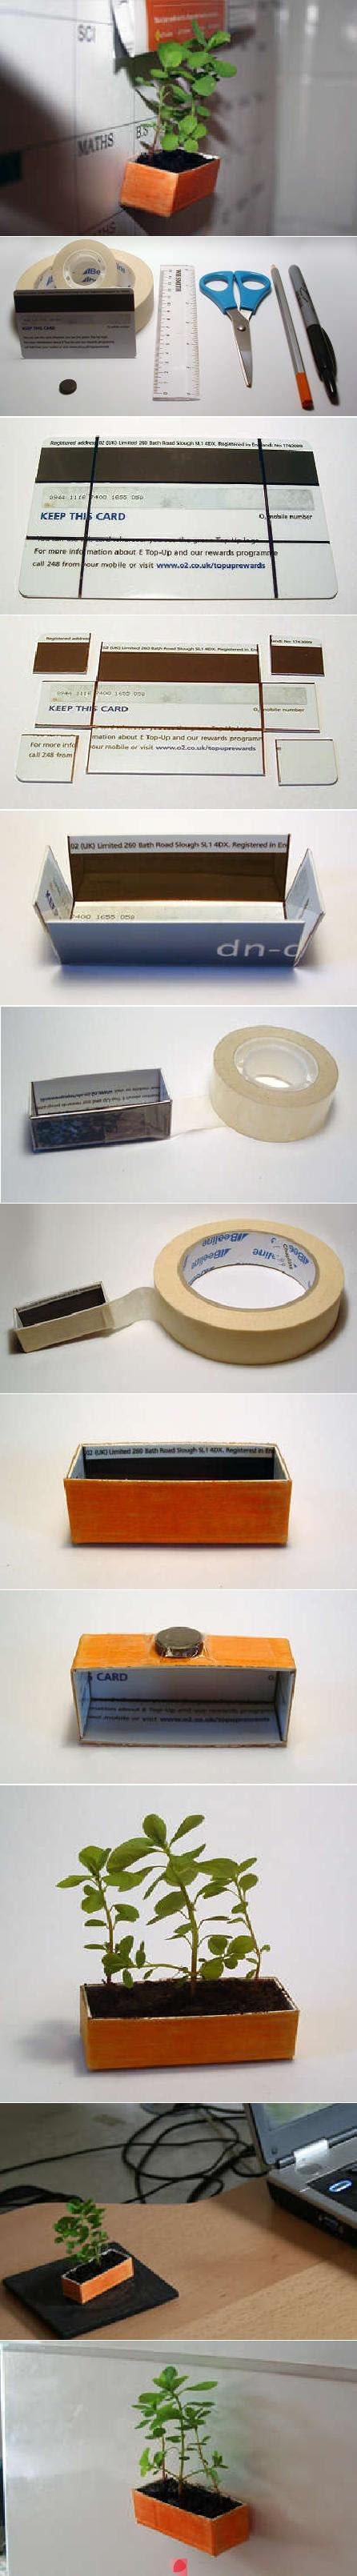 This is a cute idea. I wonder if my school will let me put it in my locker...